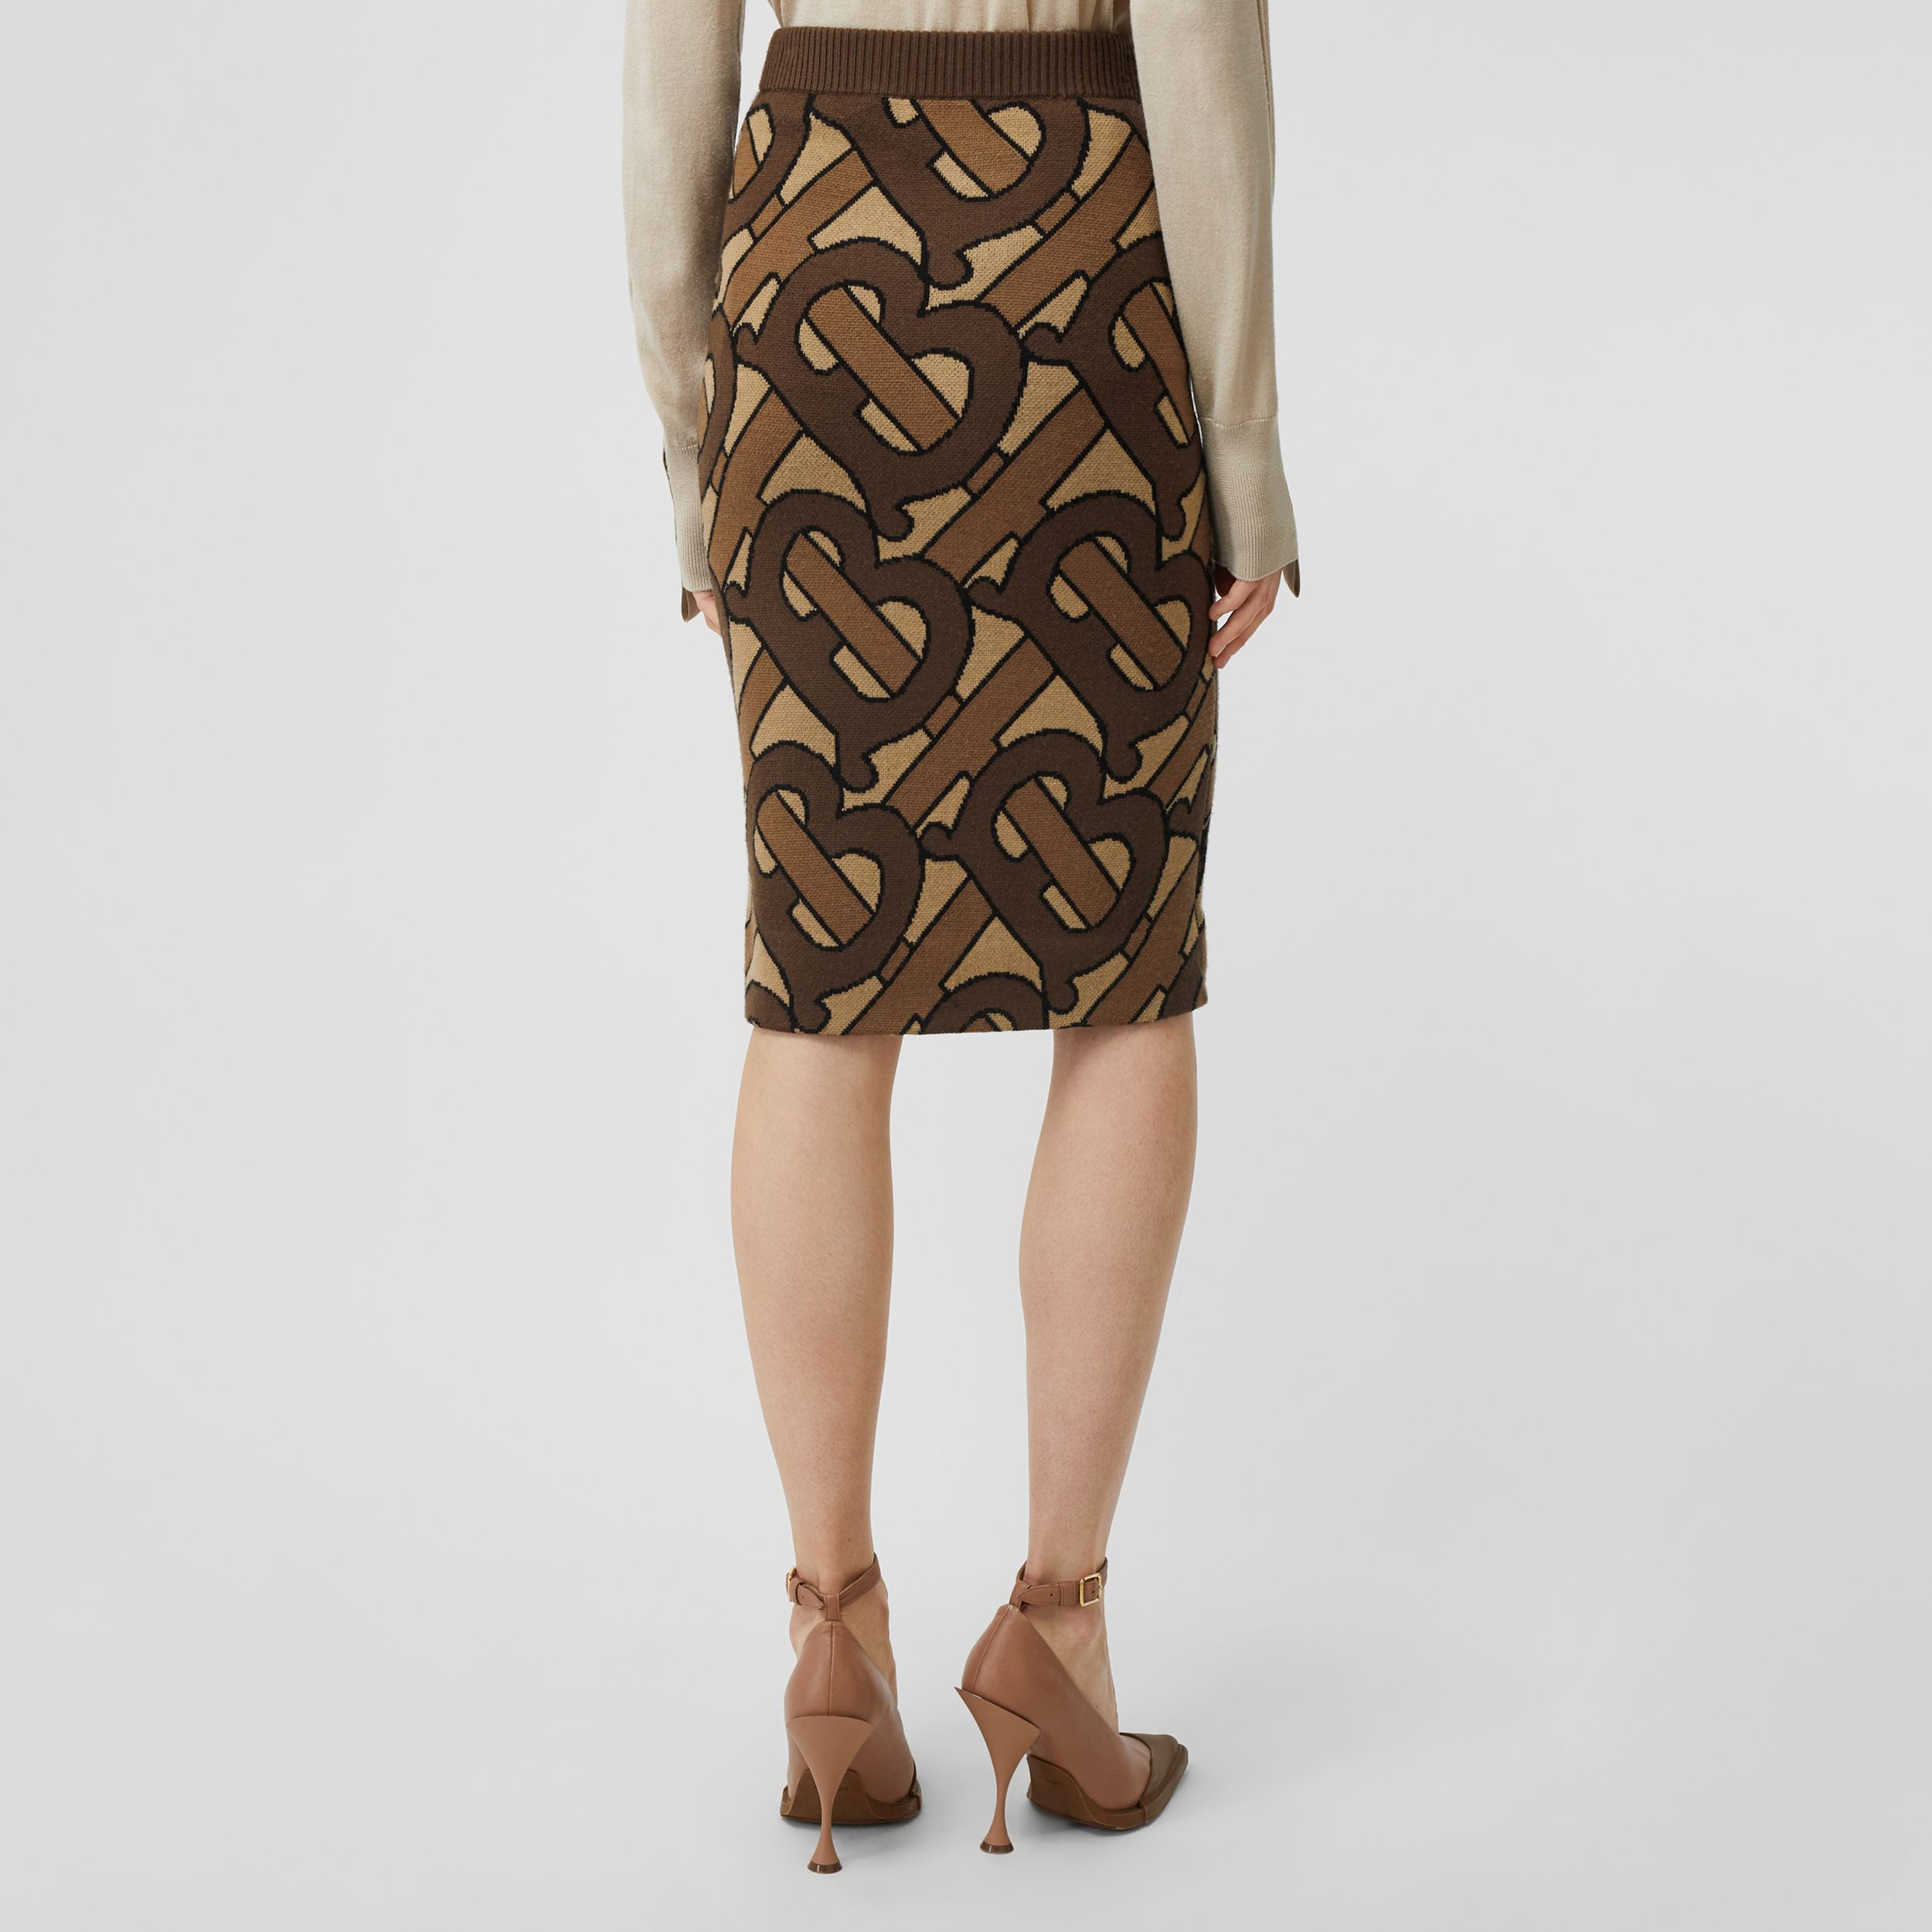 Monogram Intarsia Wool Pencil Skirt in Bridle Brown - Women | Burberry - 3